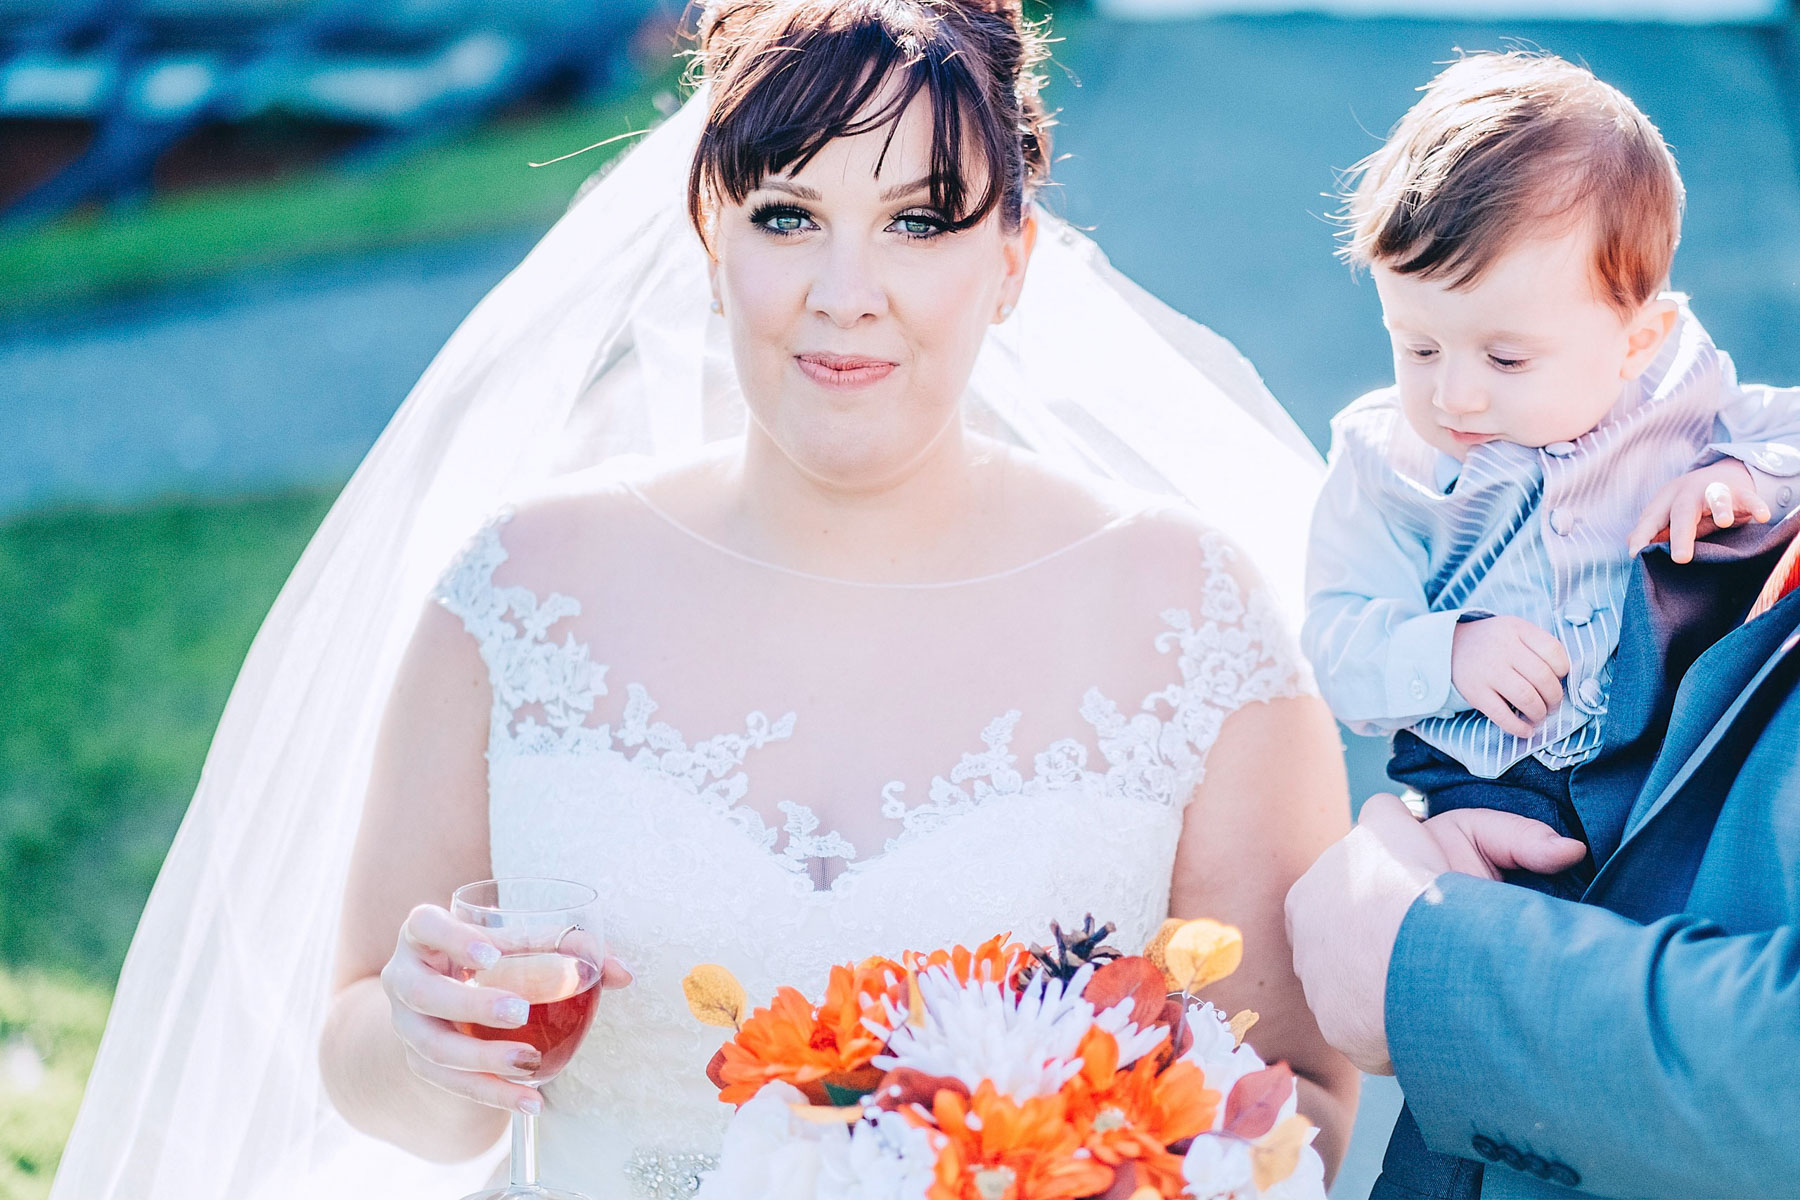 Bride looks towards the camera while light envelops her